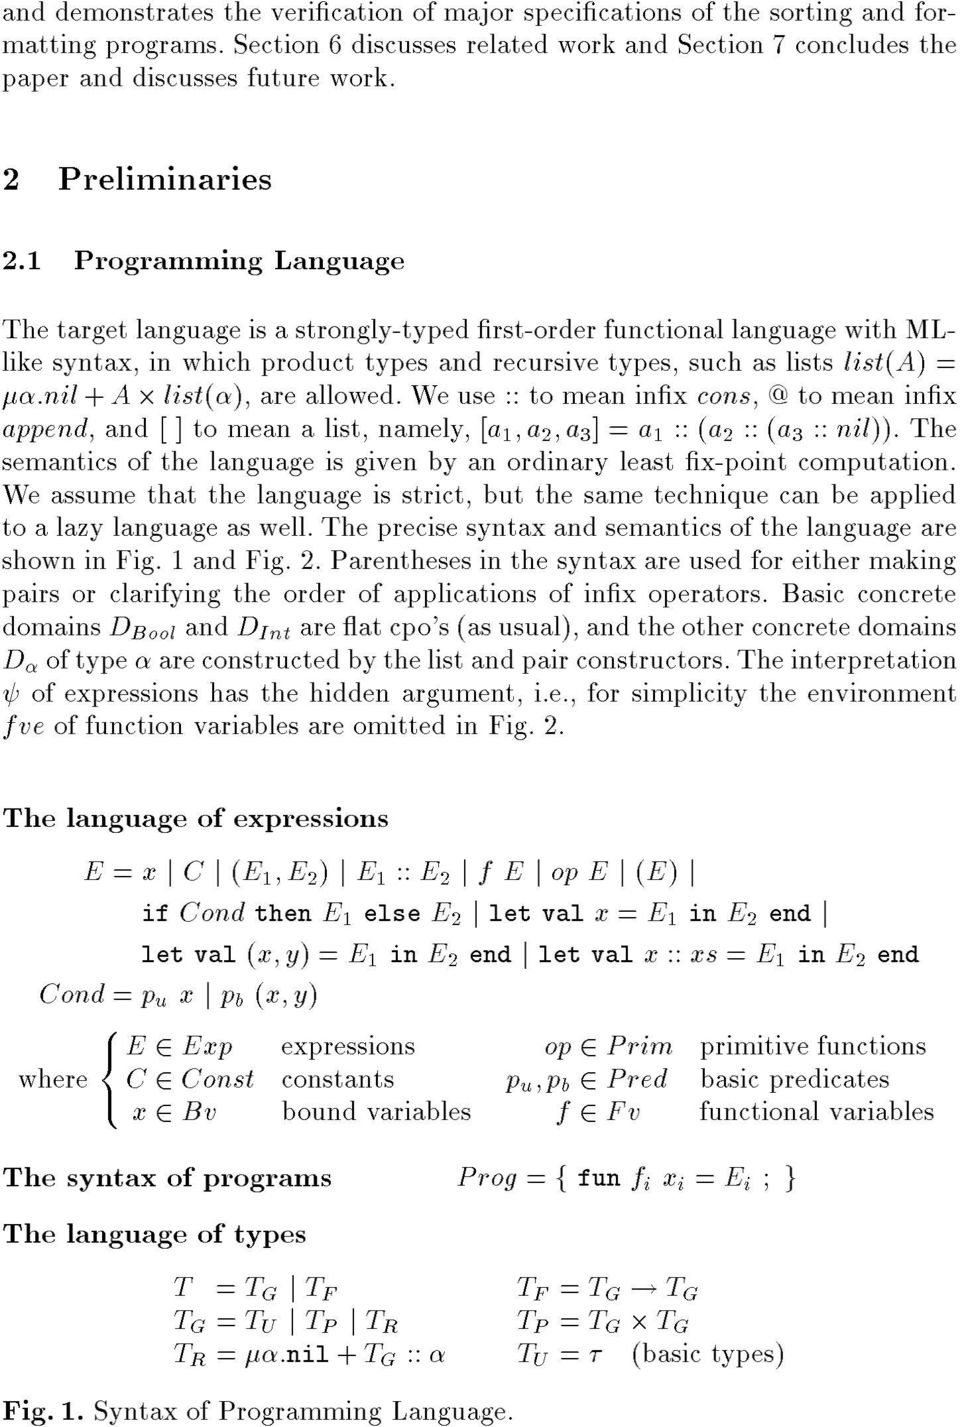 1 Programming Language The target language is a strongly-typed rst-order functional language with MLlike syntax, in which product types and recursive types, such as lists list(a) = :nil + A 2 list(),